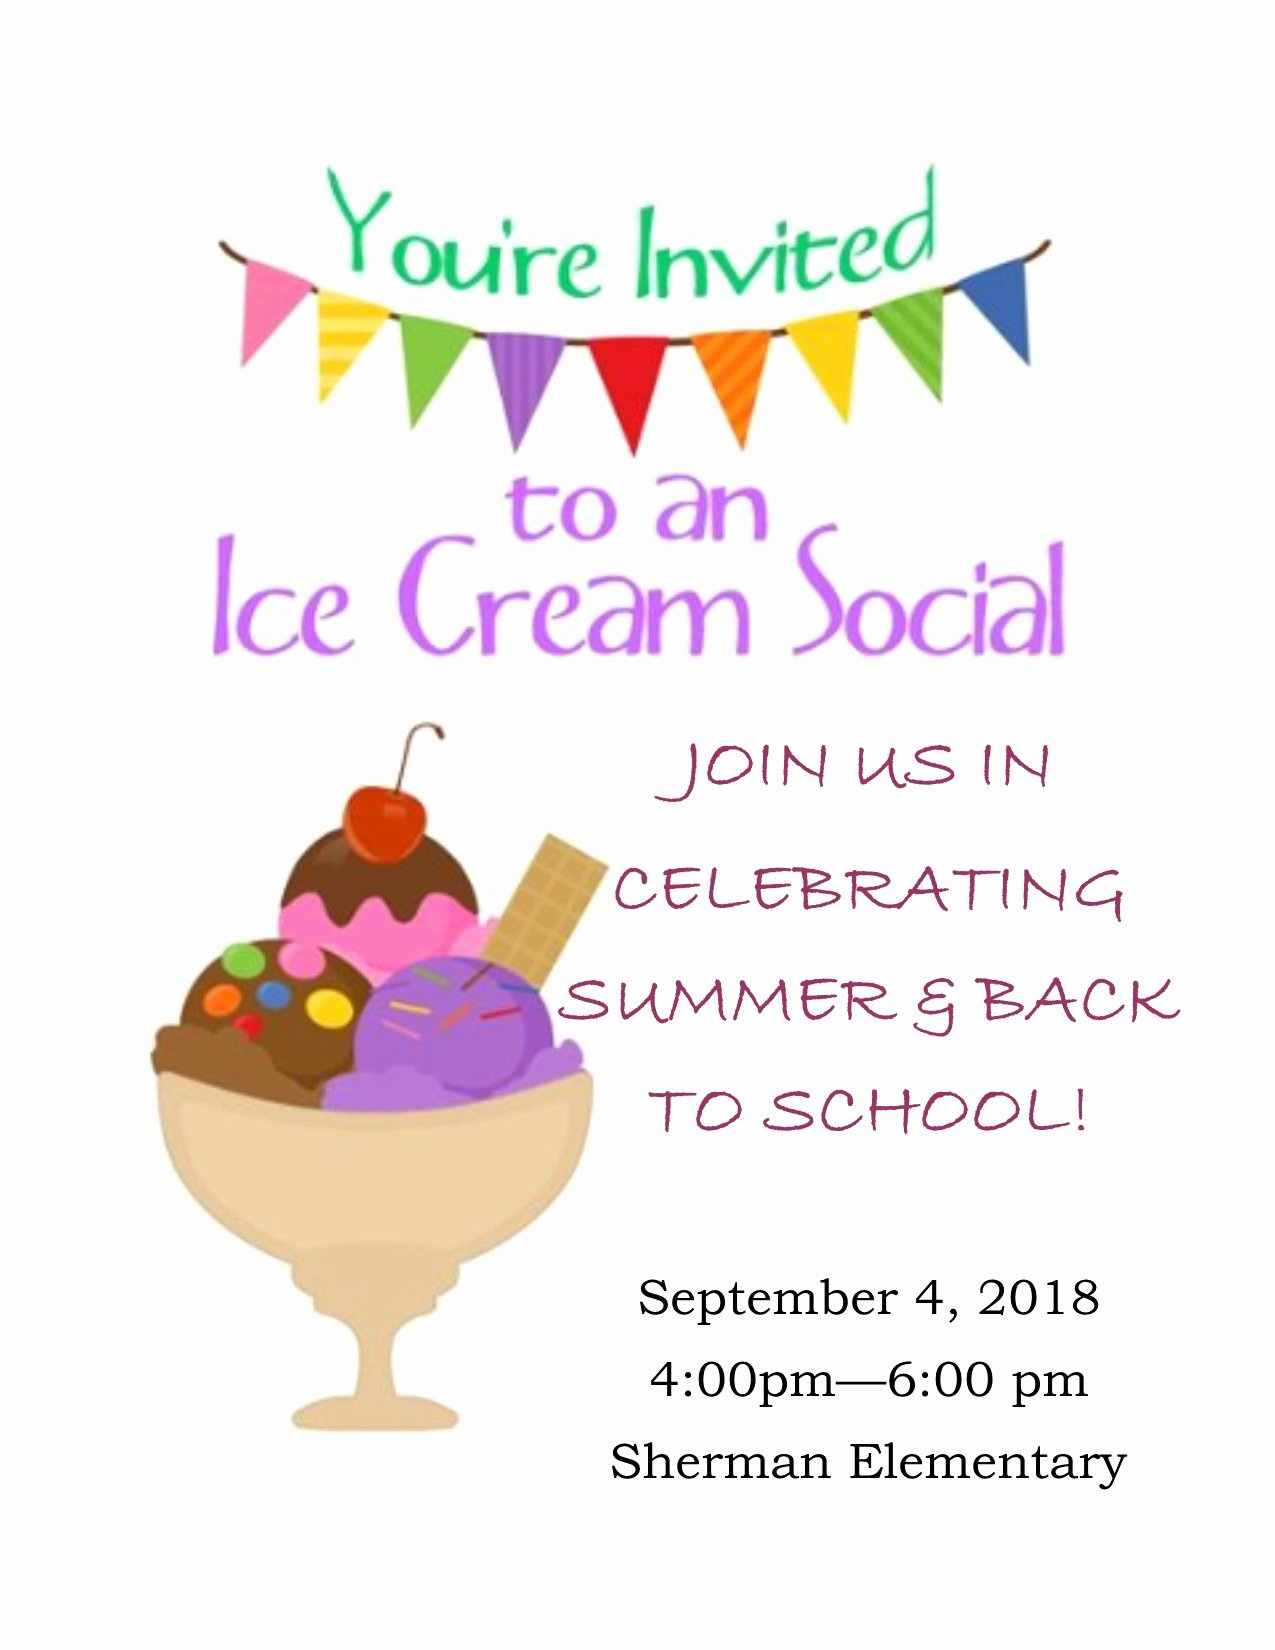 Ice Cream social Flyer Luxury Ice Cream social 2018